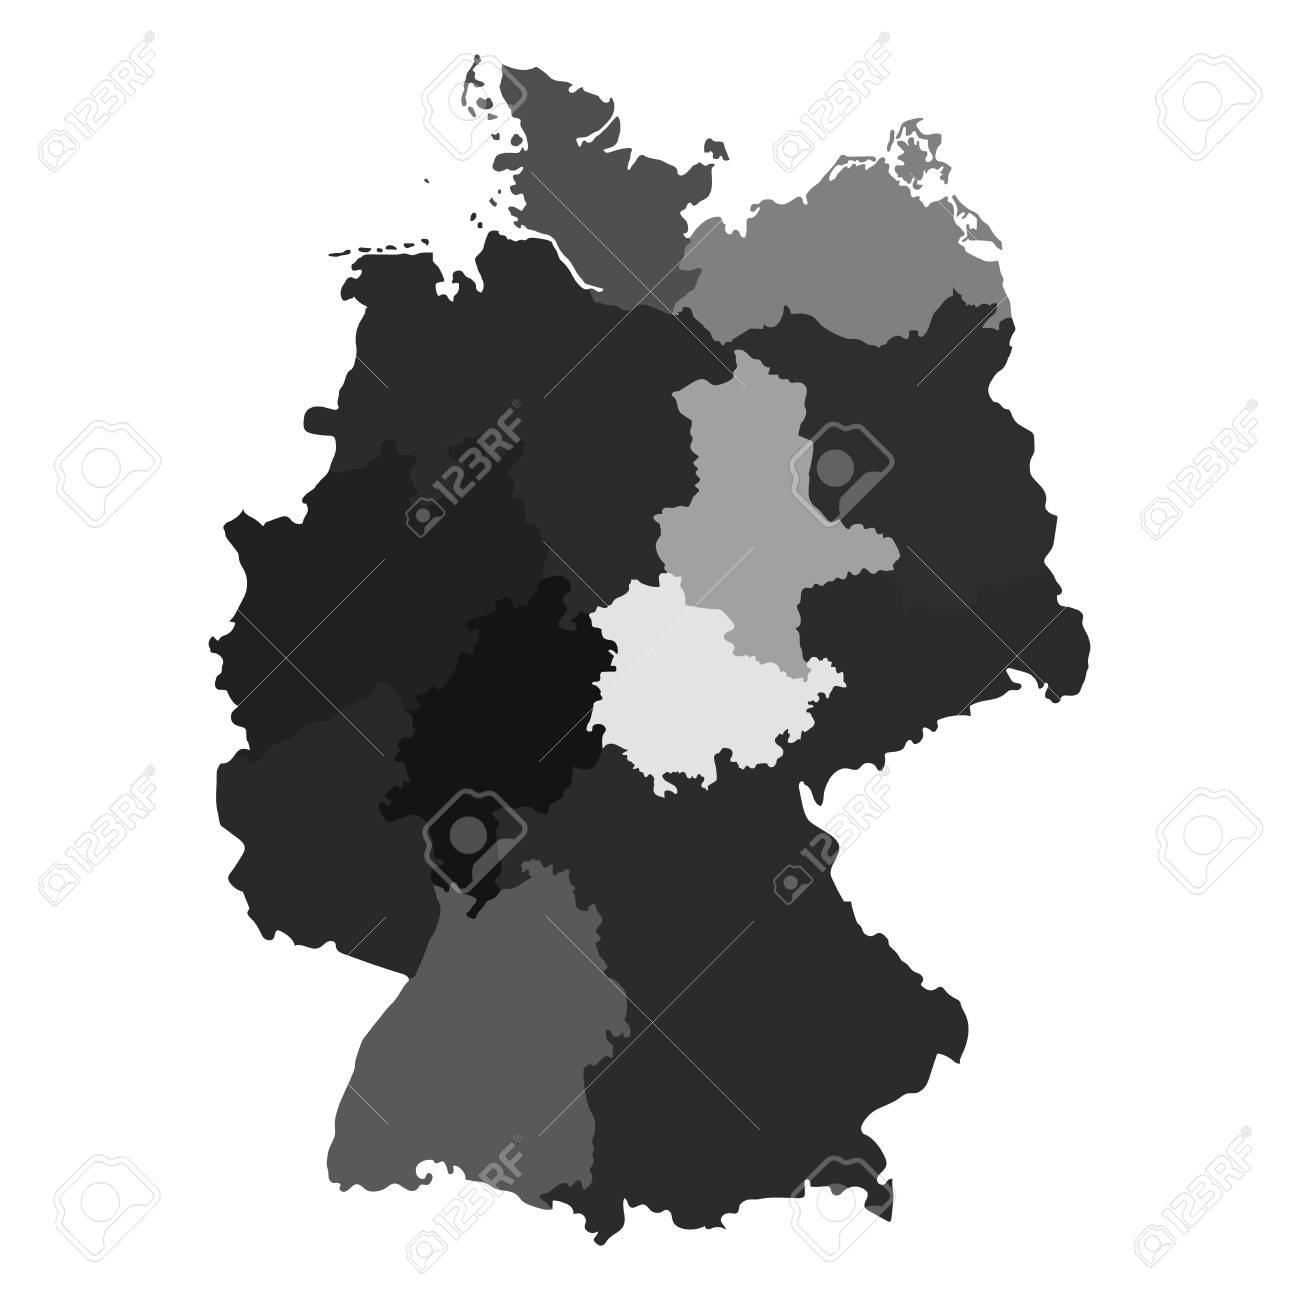 germany map divided on regions for infographic stock vector 75490619